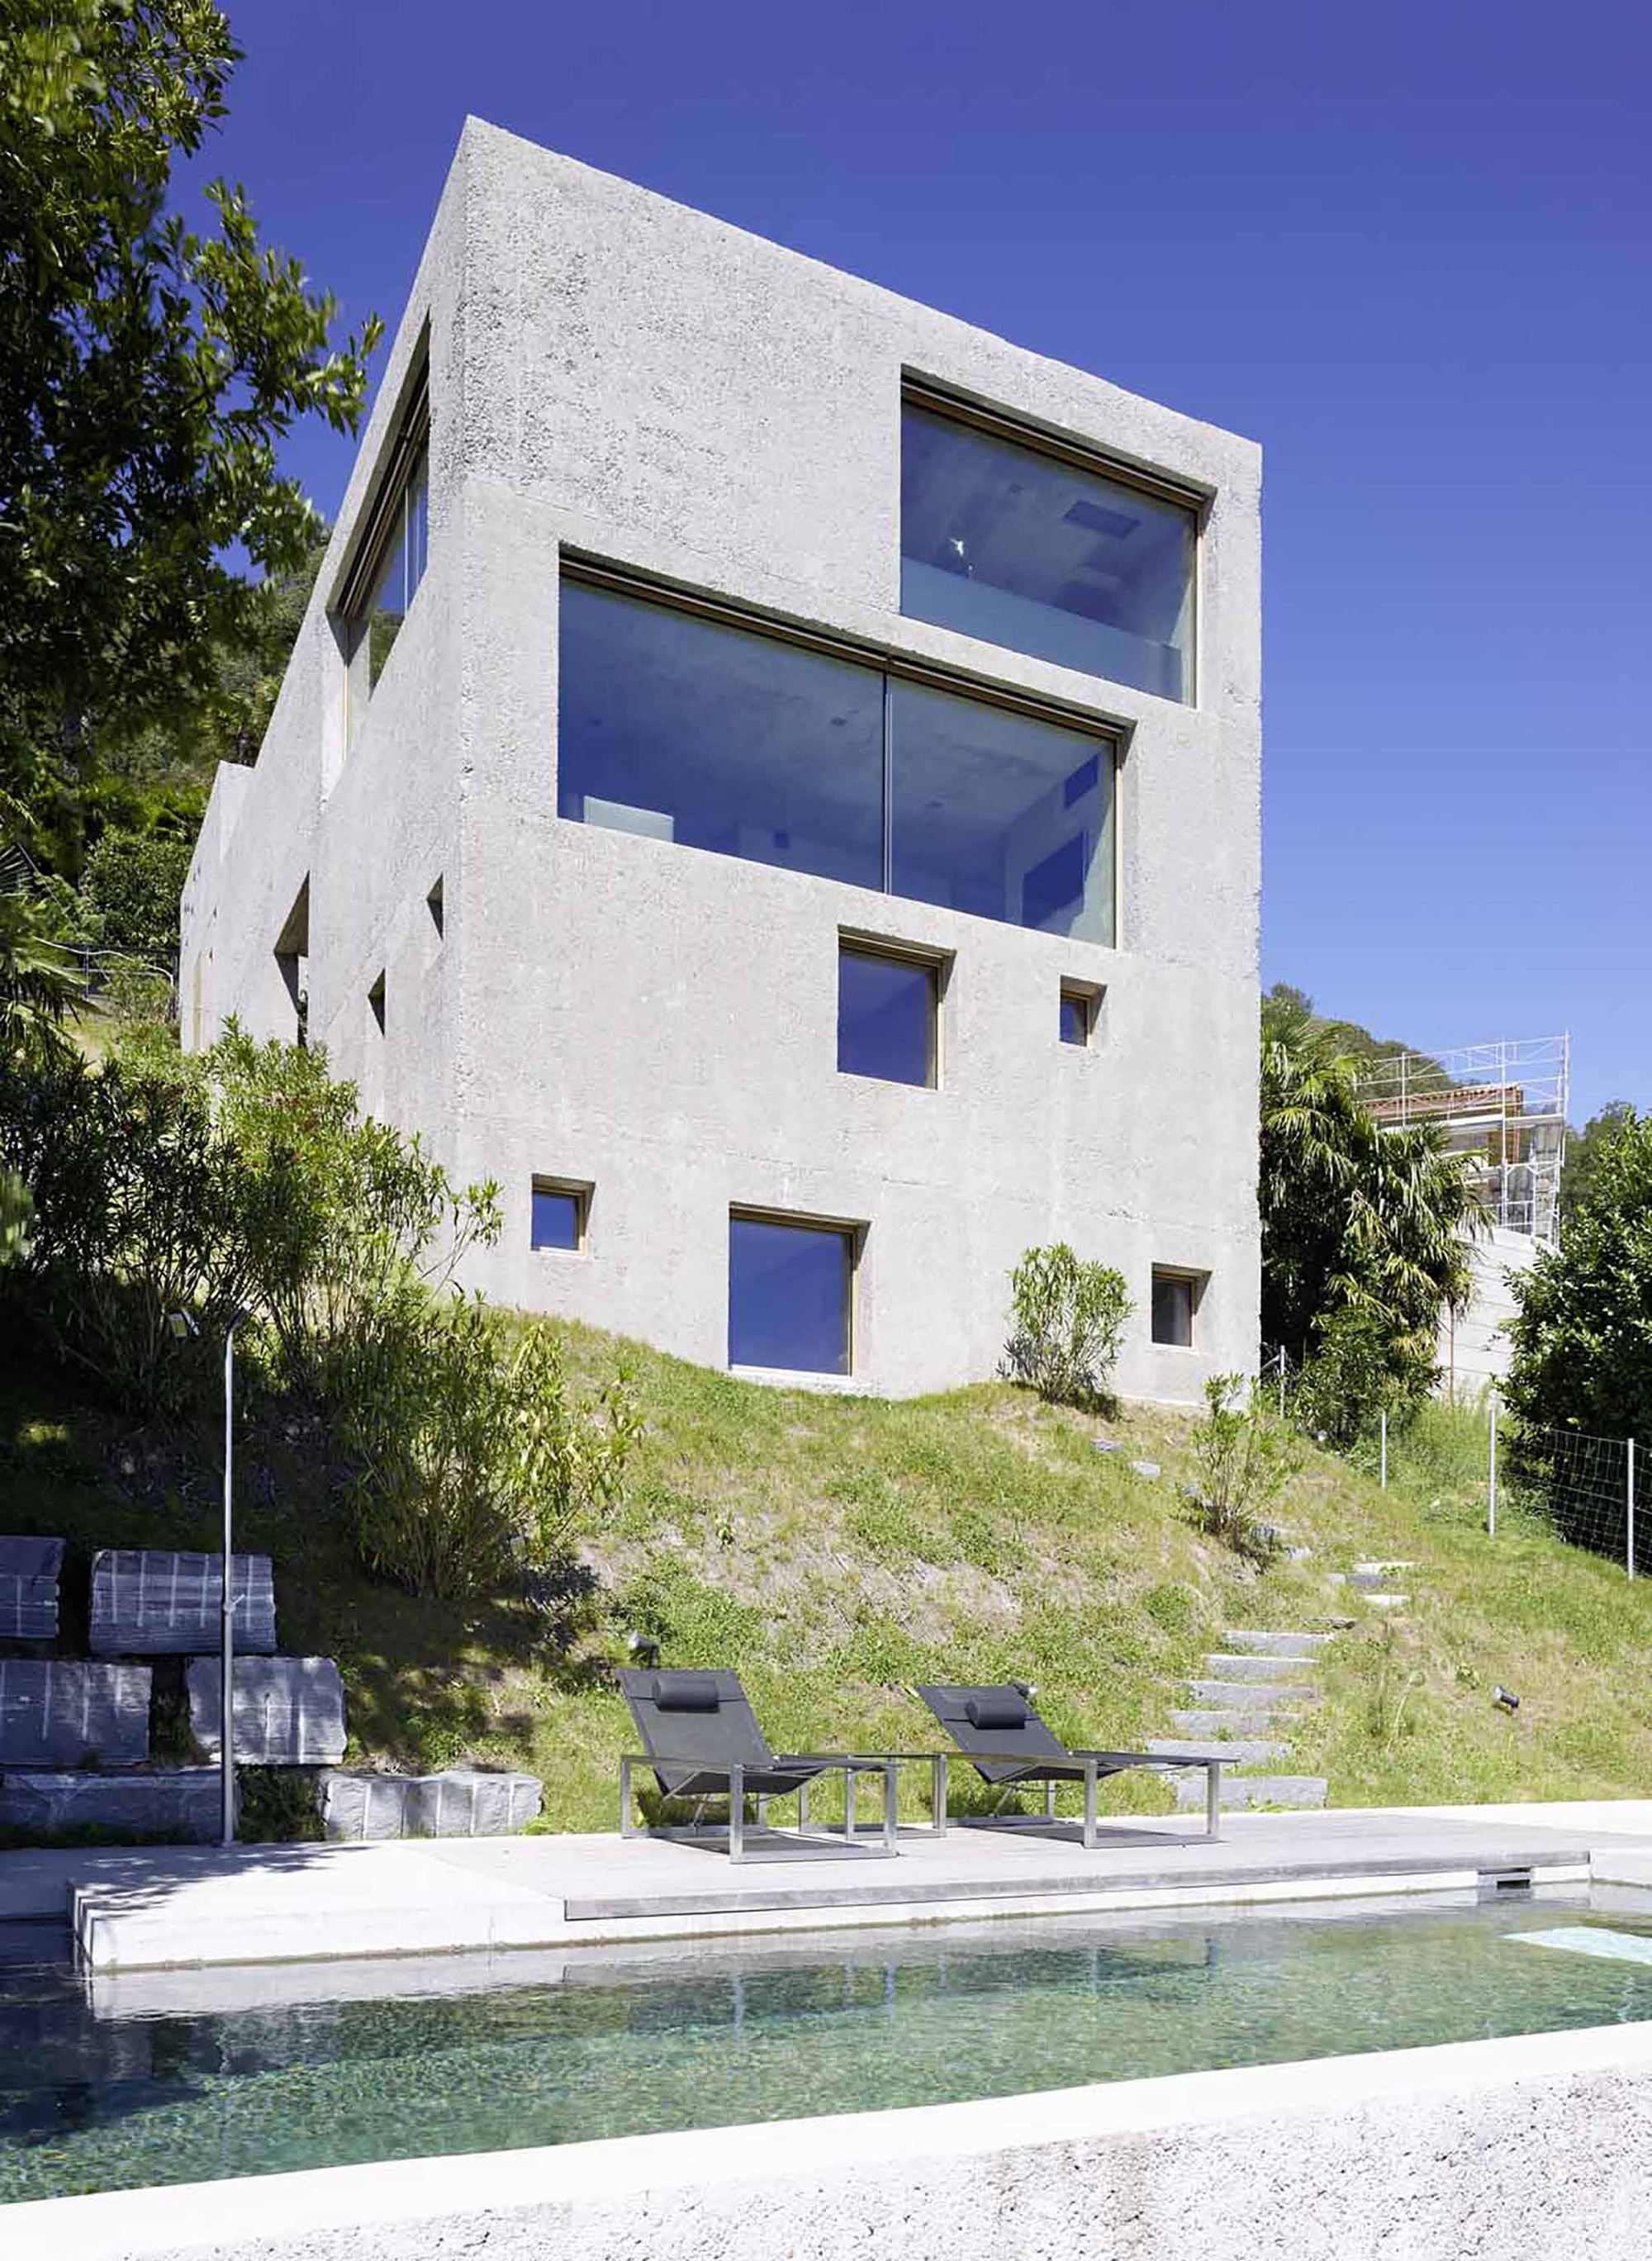 House in brissago by wespi de meuron romeo architects in for Home architects